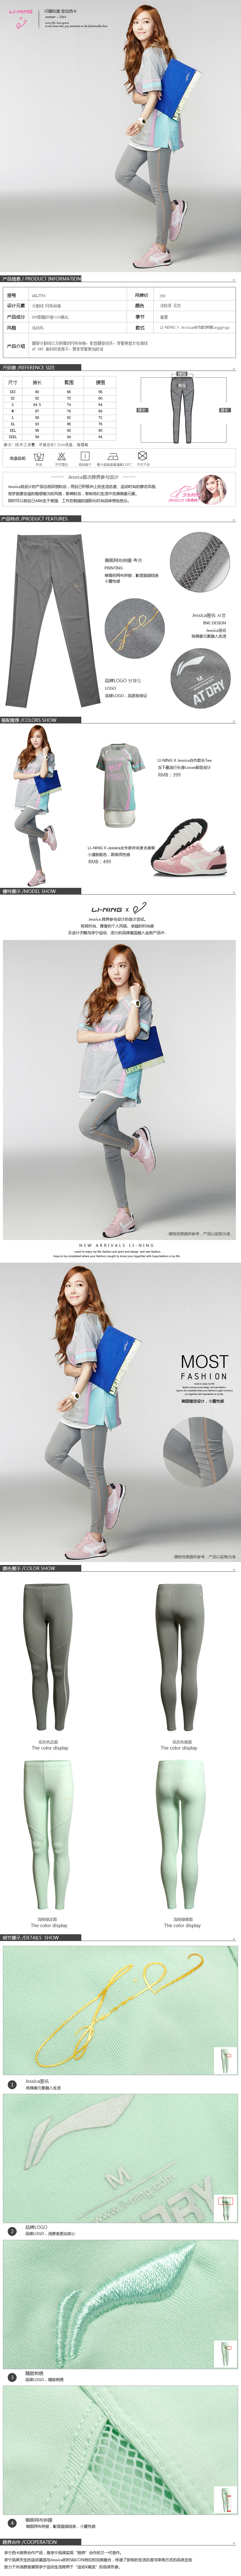 [140704] Jessica (SNSD) New Picture for Li-Ning Sport CF [13]